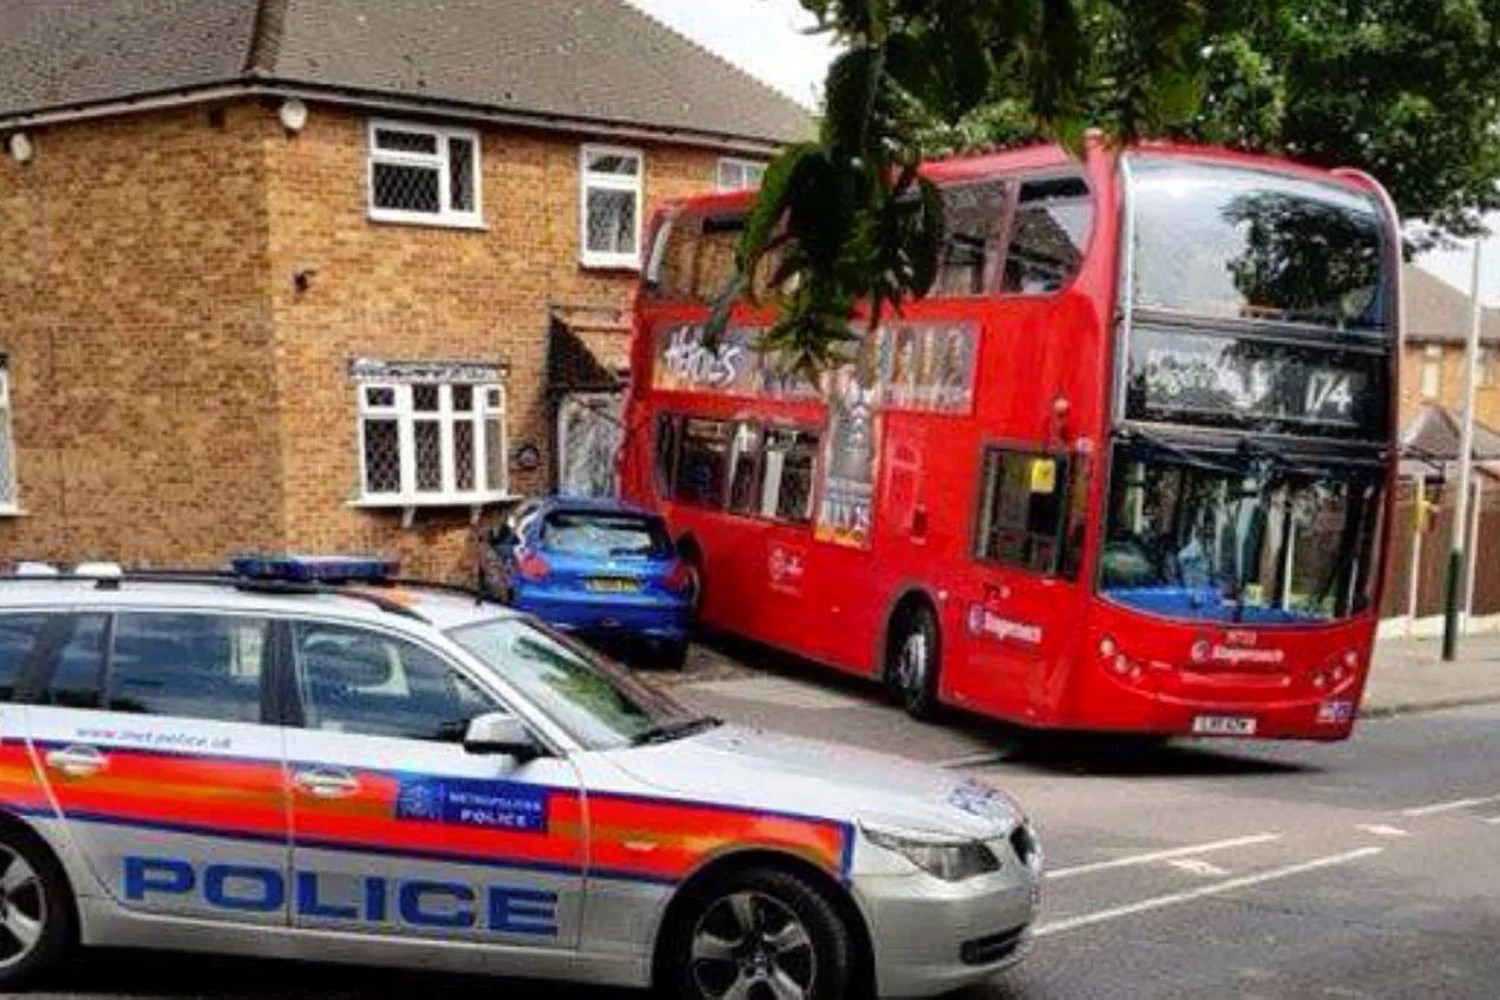 Wrecked by runaway bus inside the house destroyed by driverless doubledecker  London Evening